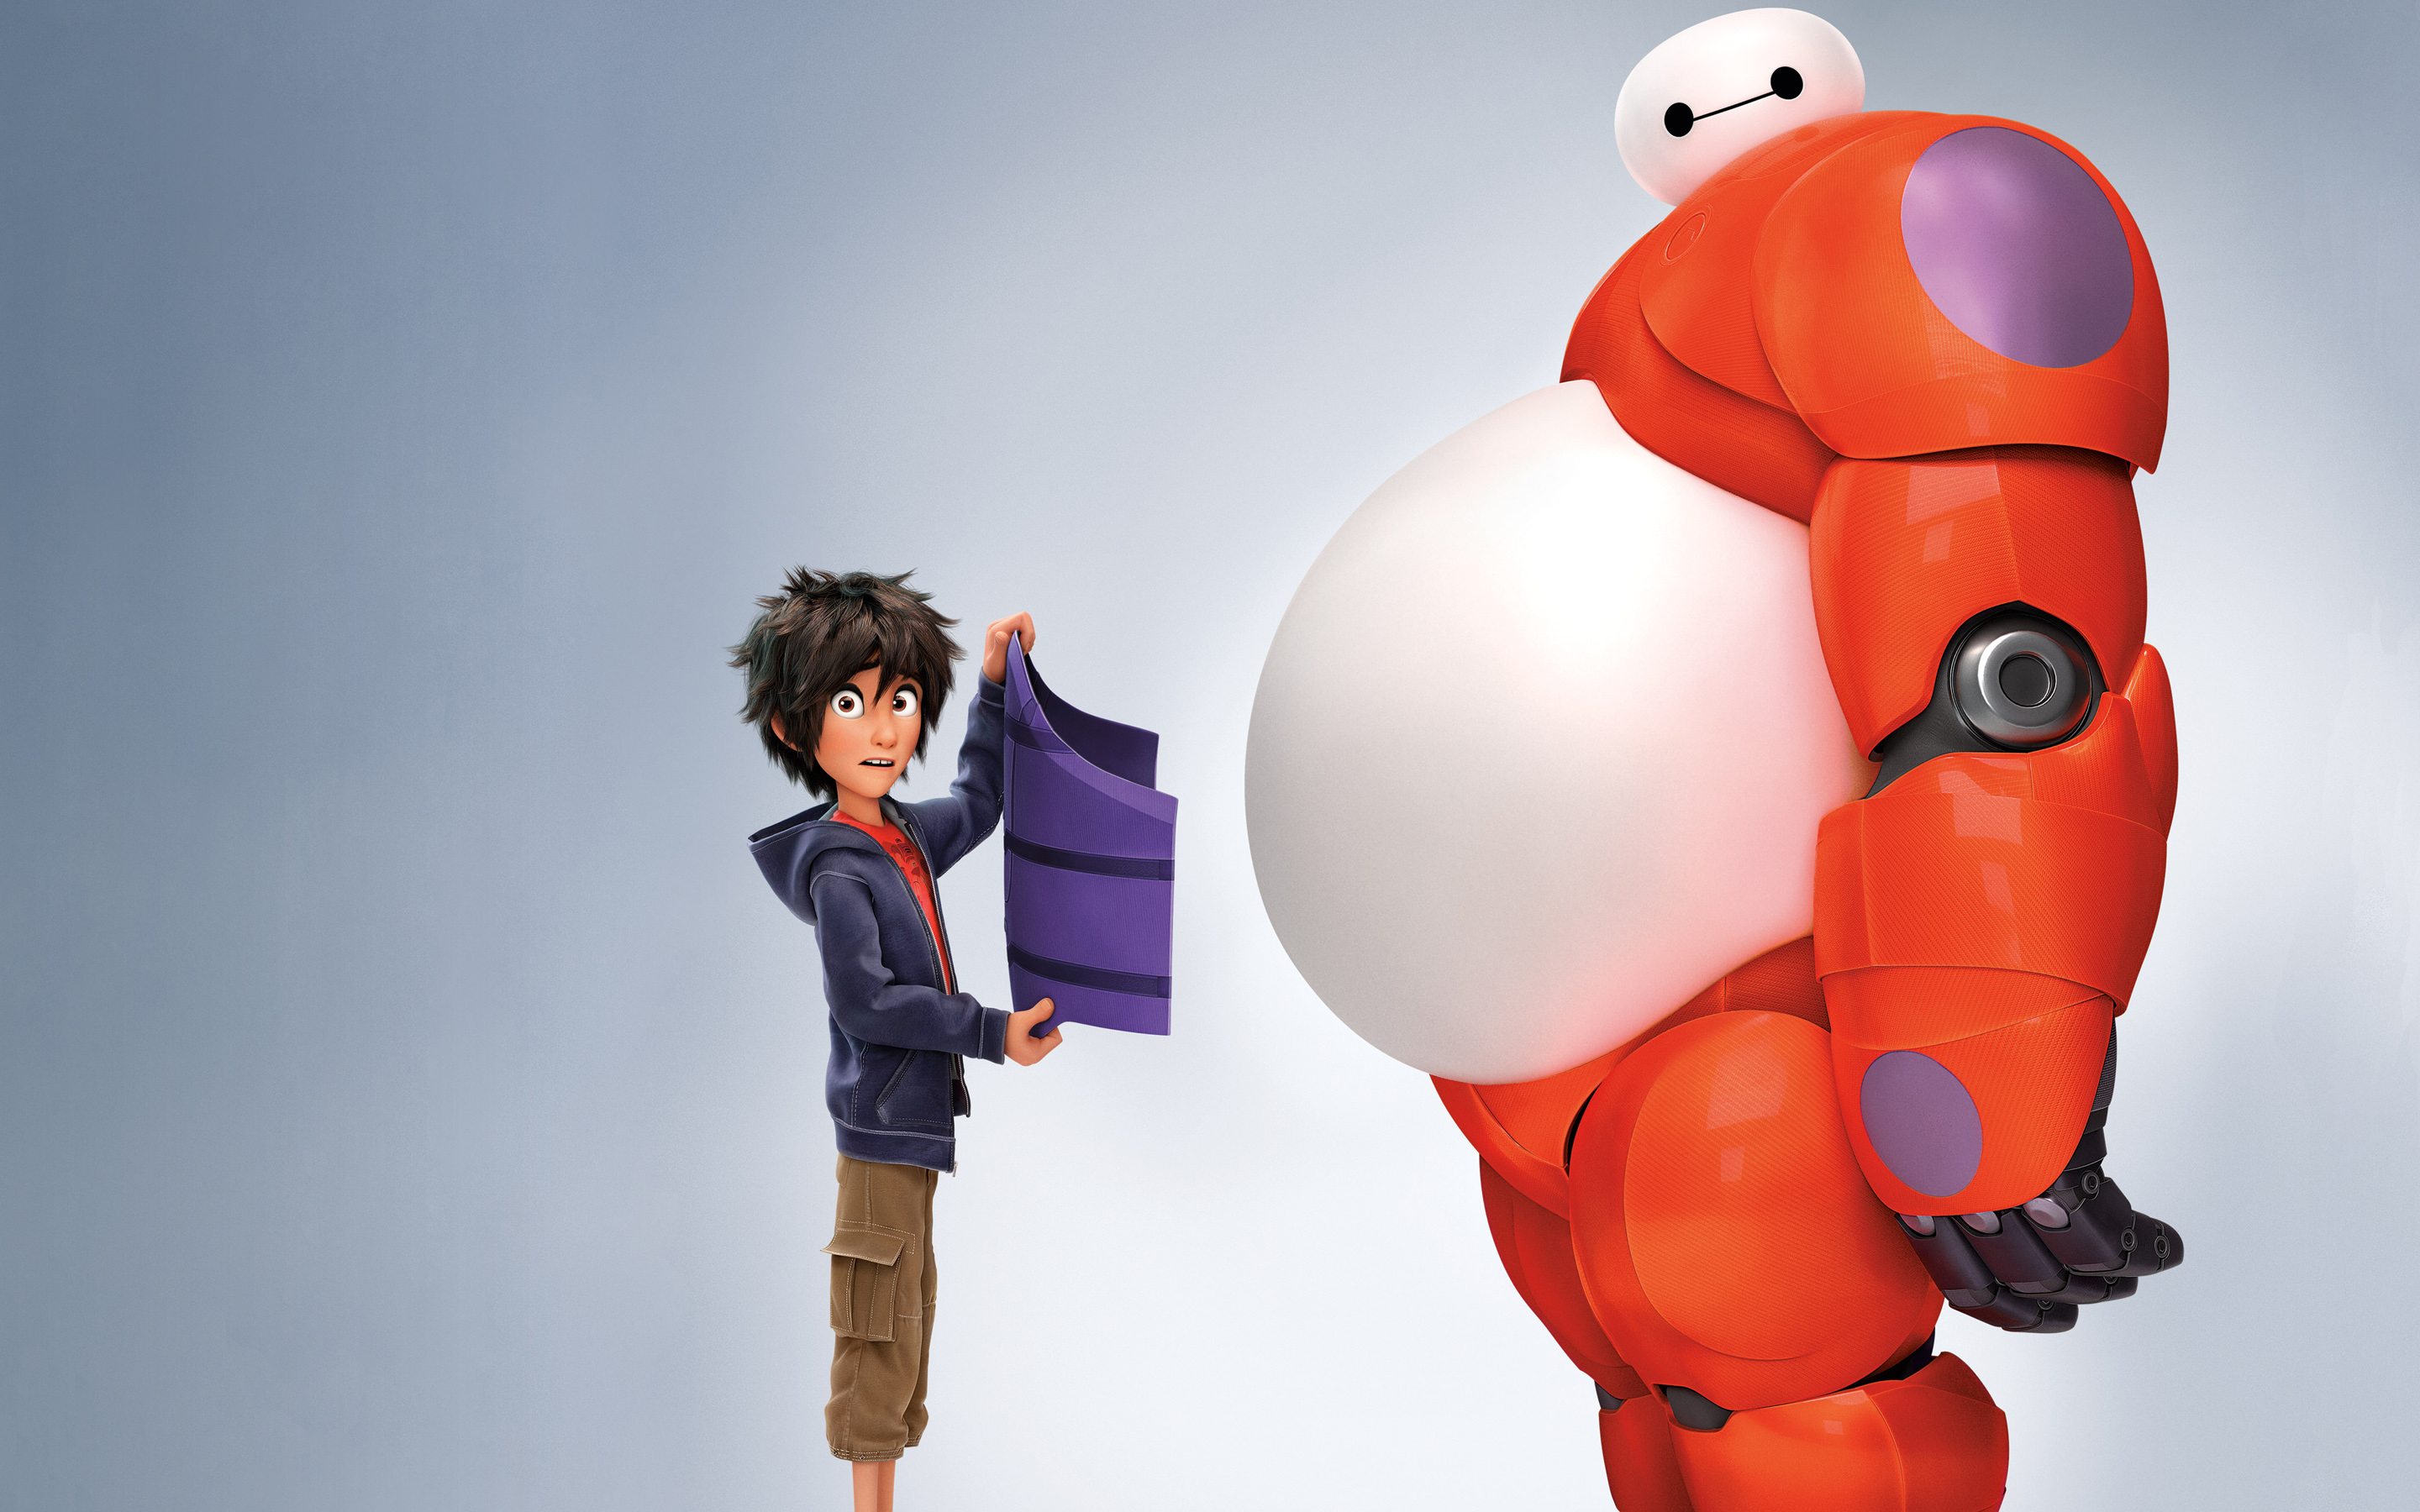 hiro_baymax_in_big_hero_6-widescreen_wallpapers